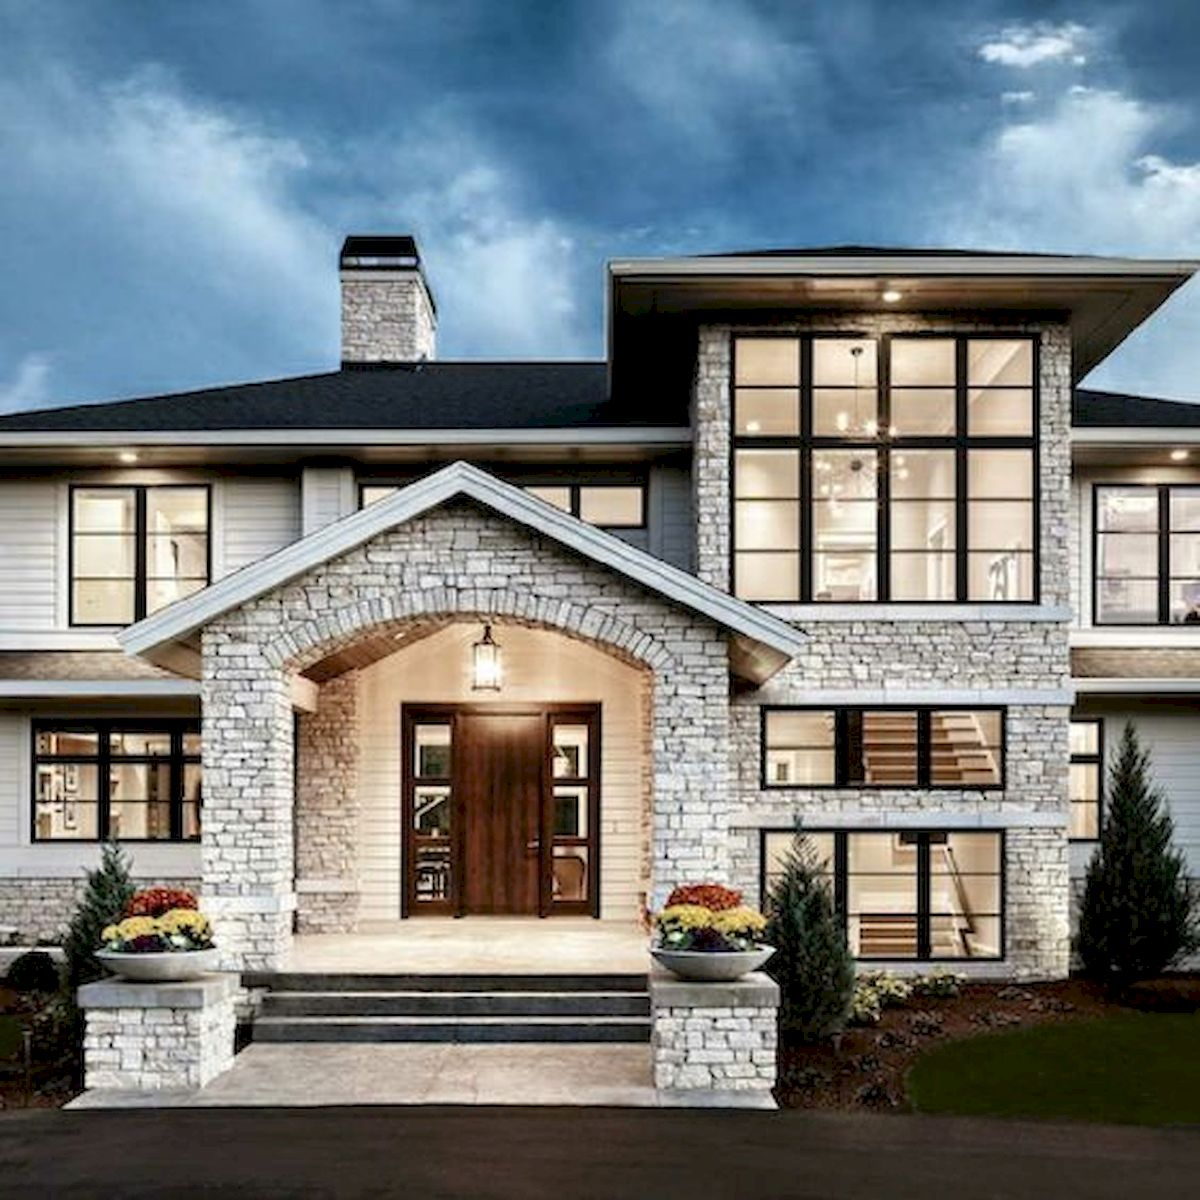 30 Contemporary Home Exterior Design Ideas: 60 Most Popular Modern Dream House Exterior Design Ideas